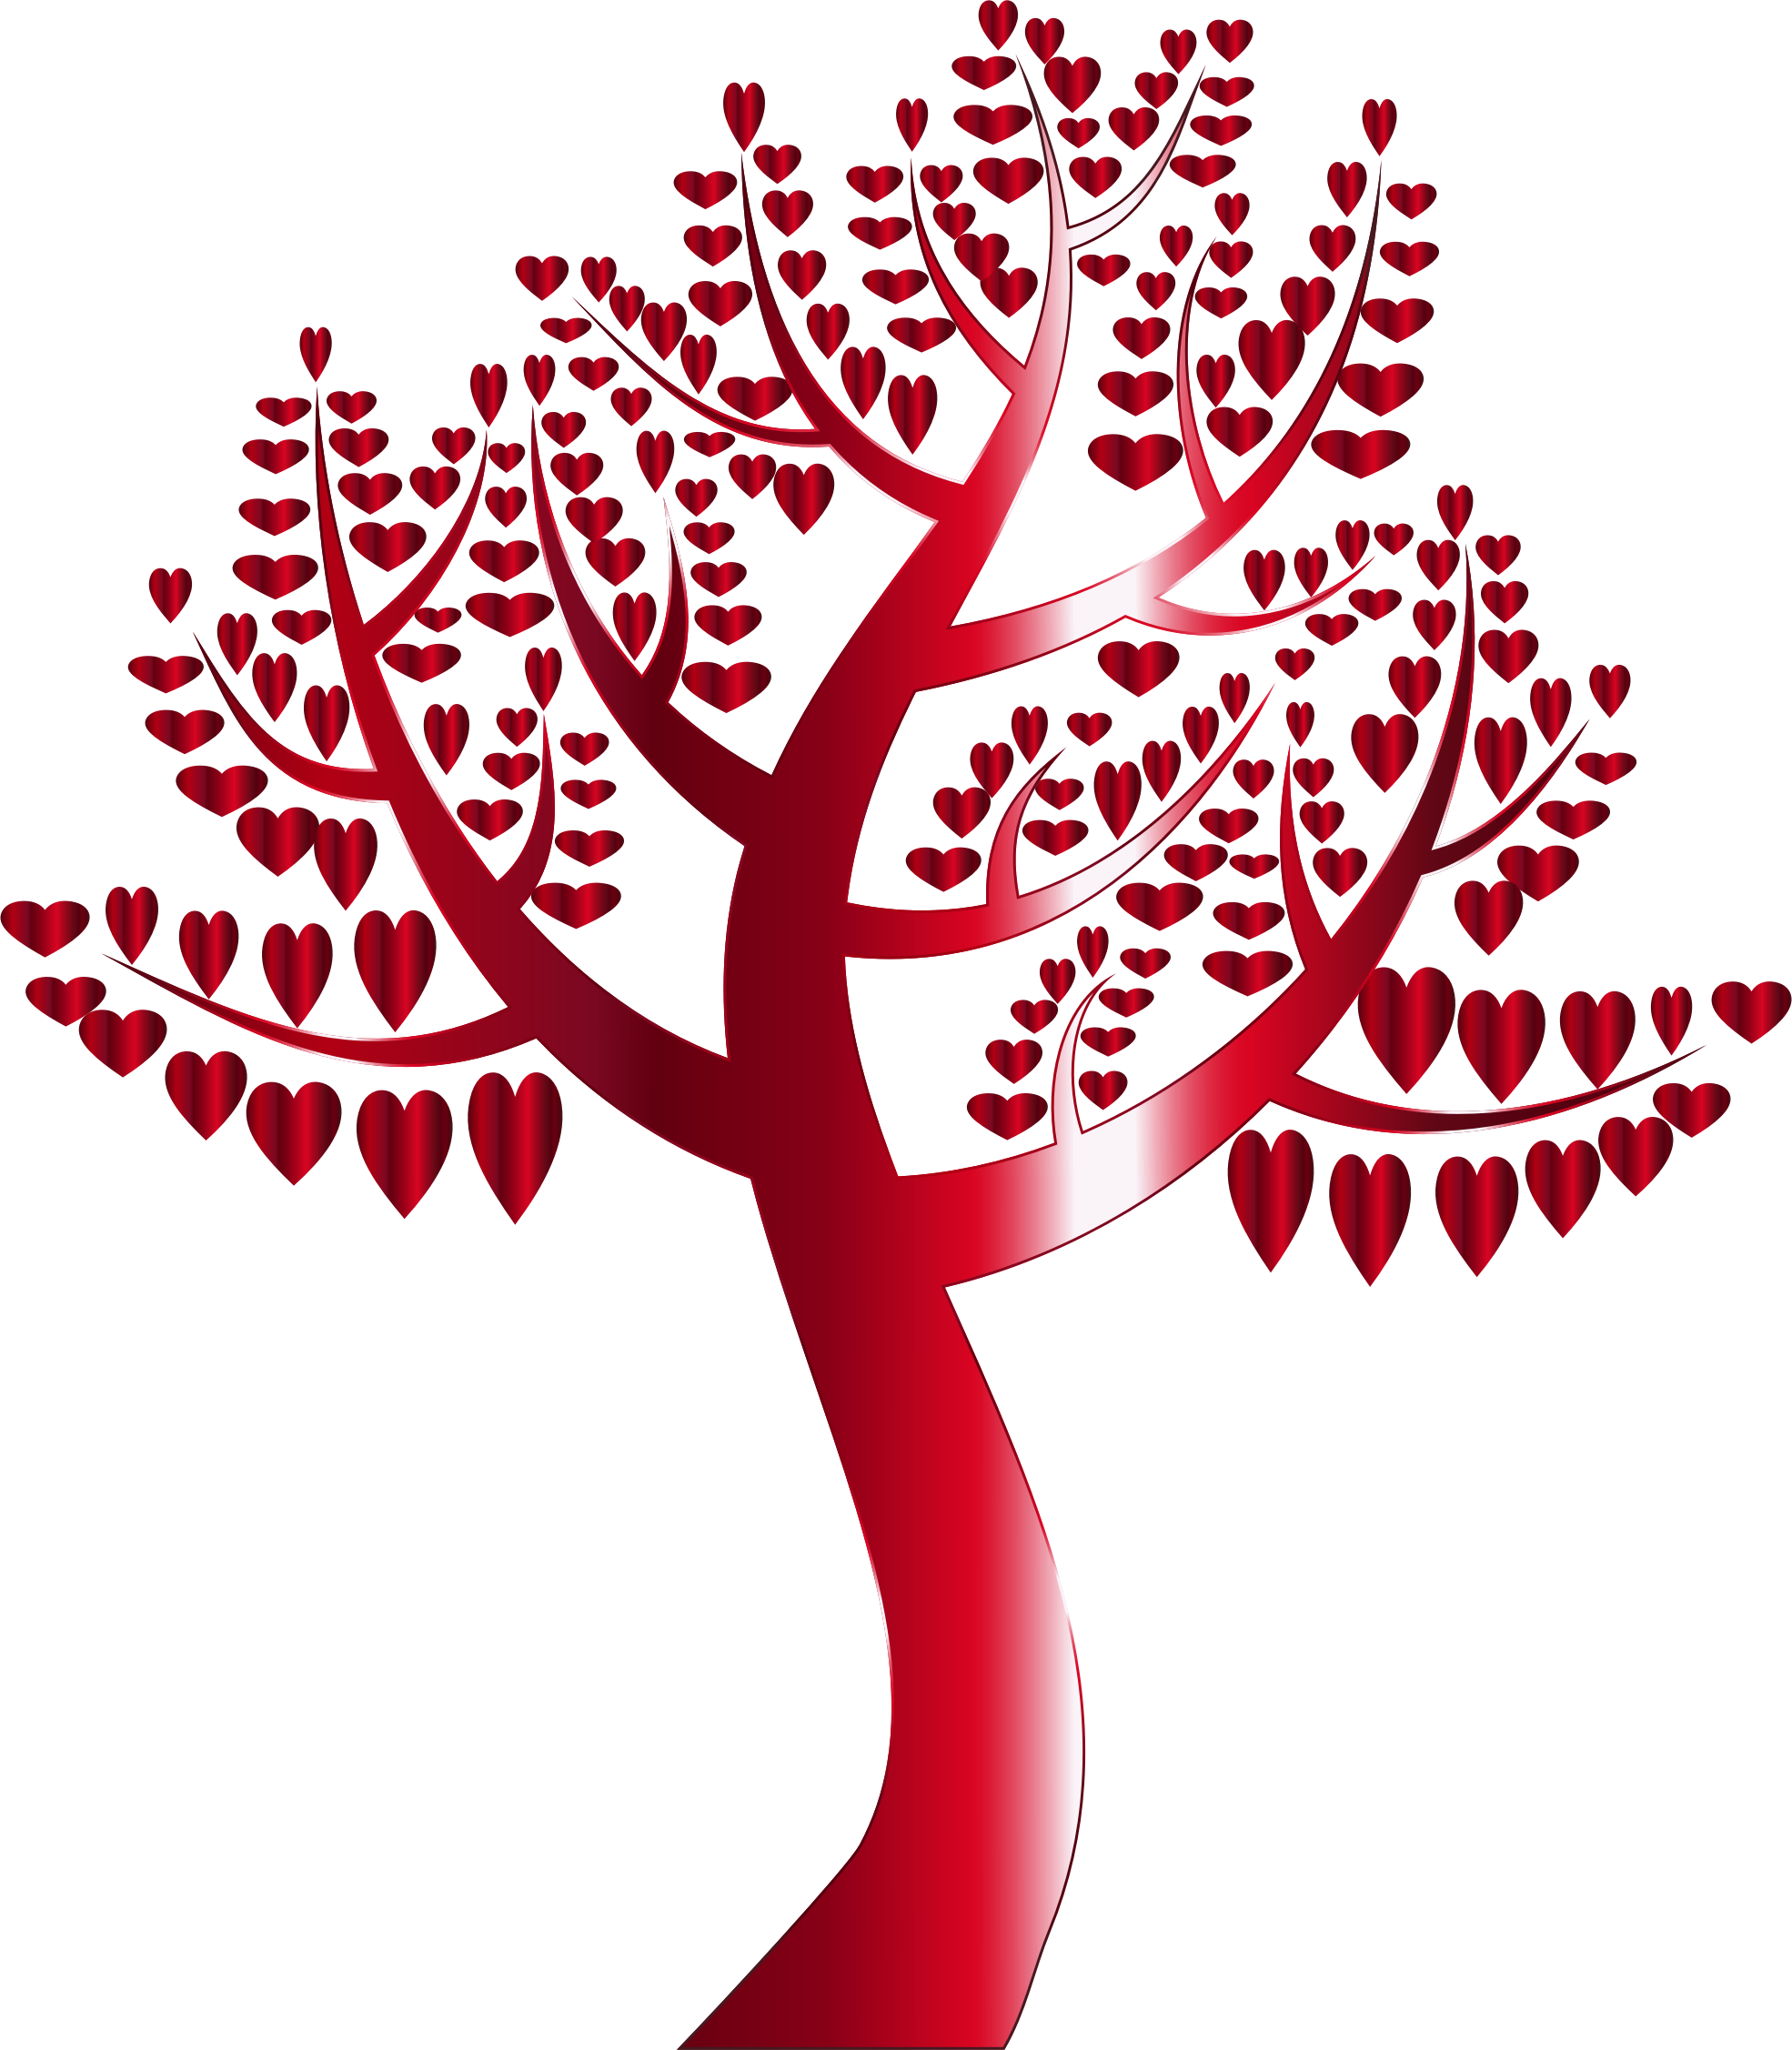 Simple Hearts Tree 11 No Background by GDJ